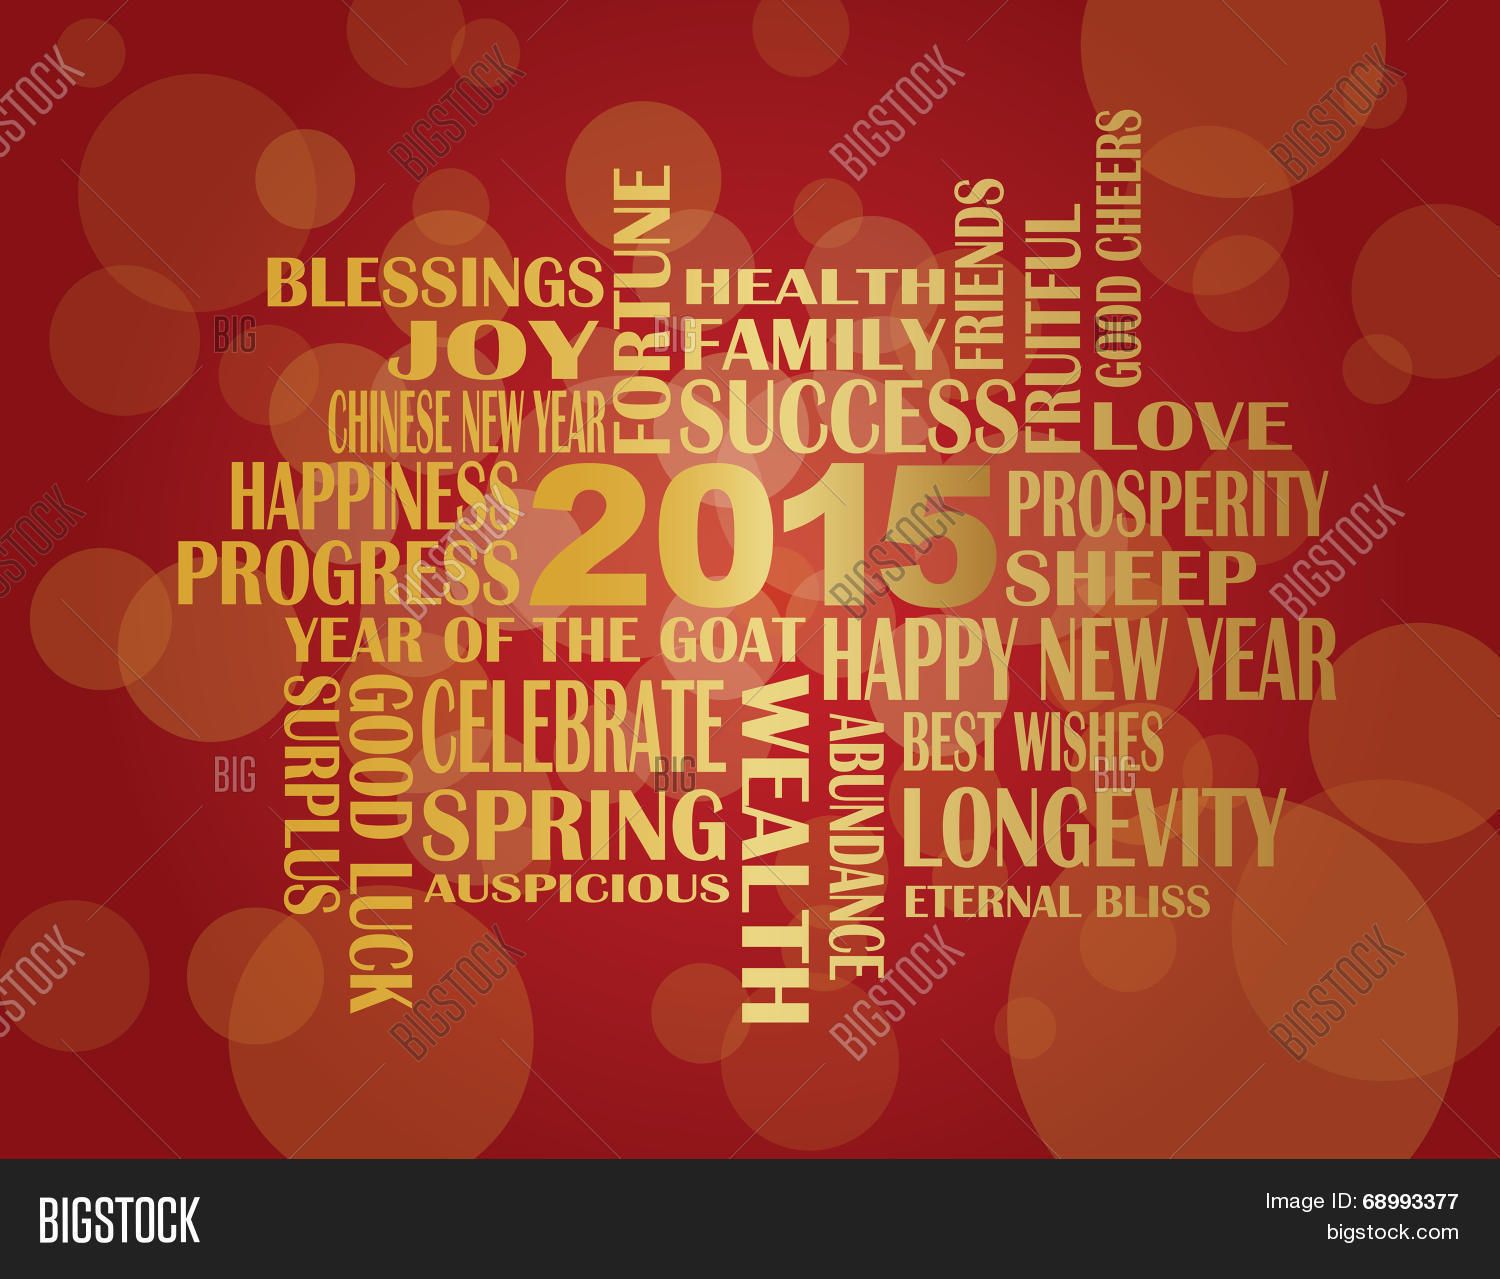 2015 Chinese New Year Vector Photo Free Trial Bigstock